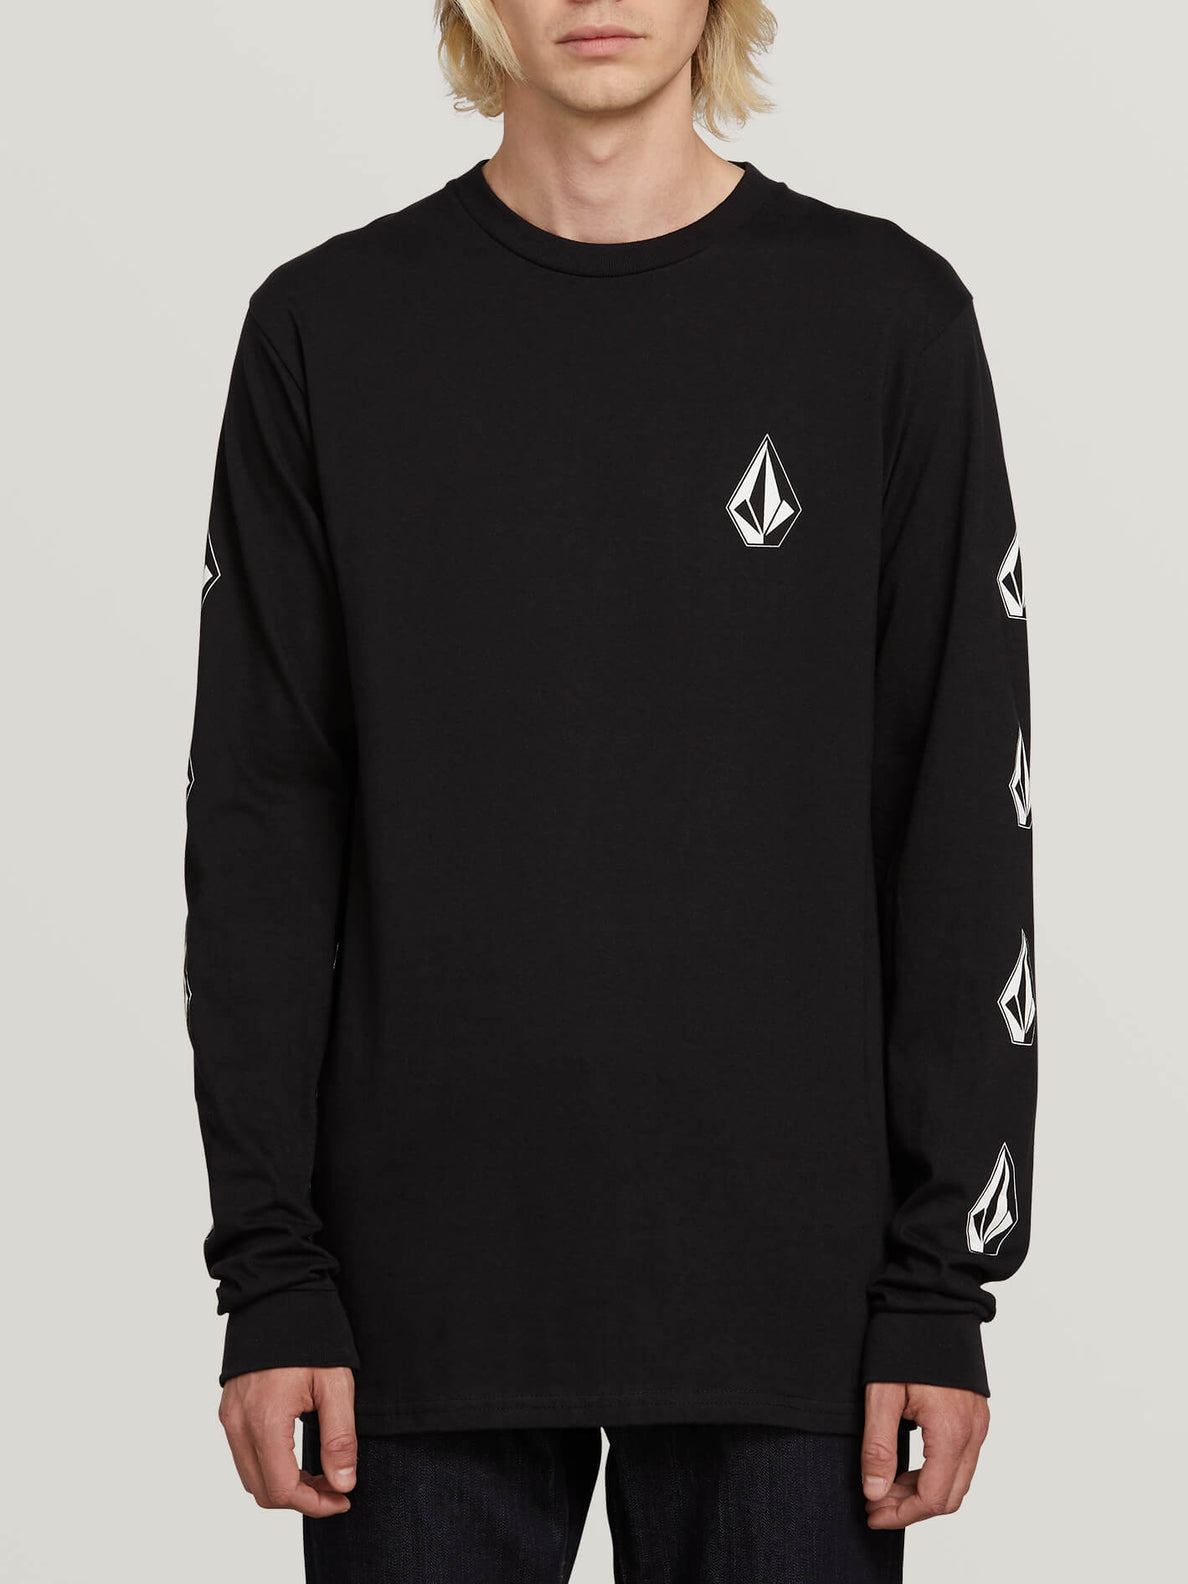 5ece4cdb5490bf Deadly Stones Long Sleeve Tee – Volcom